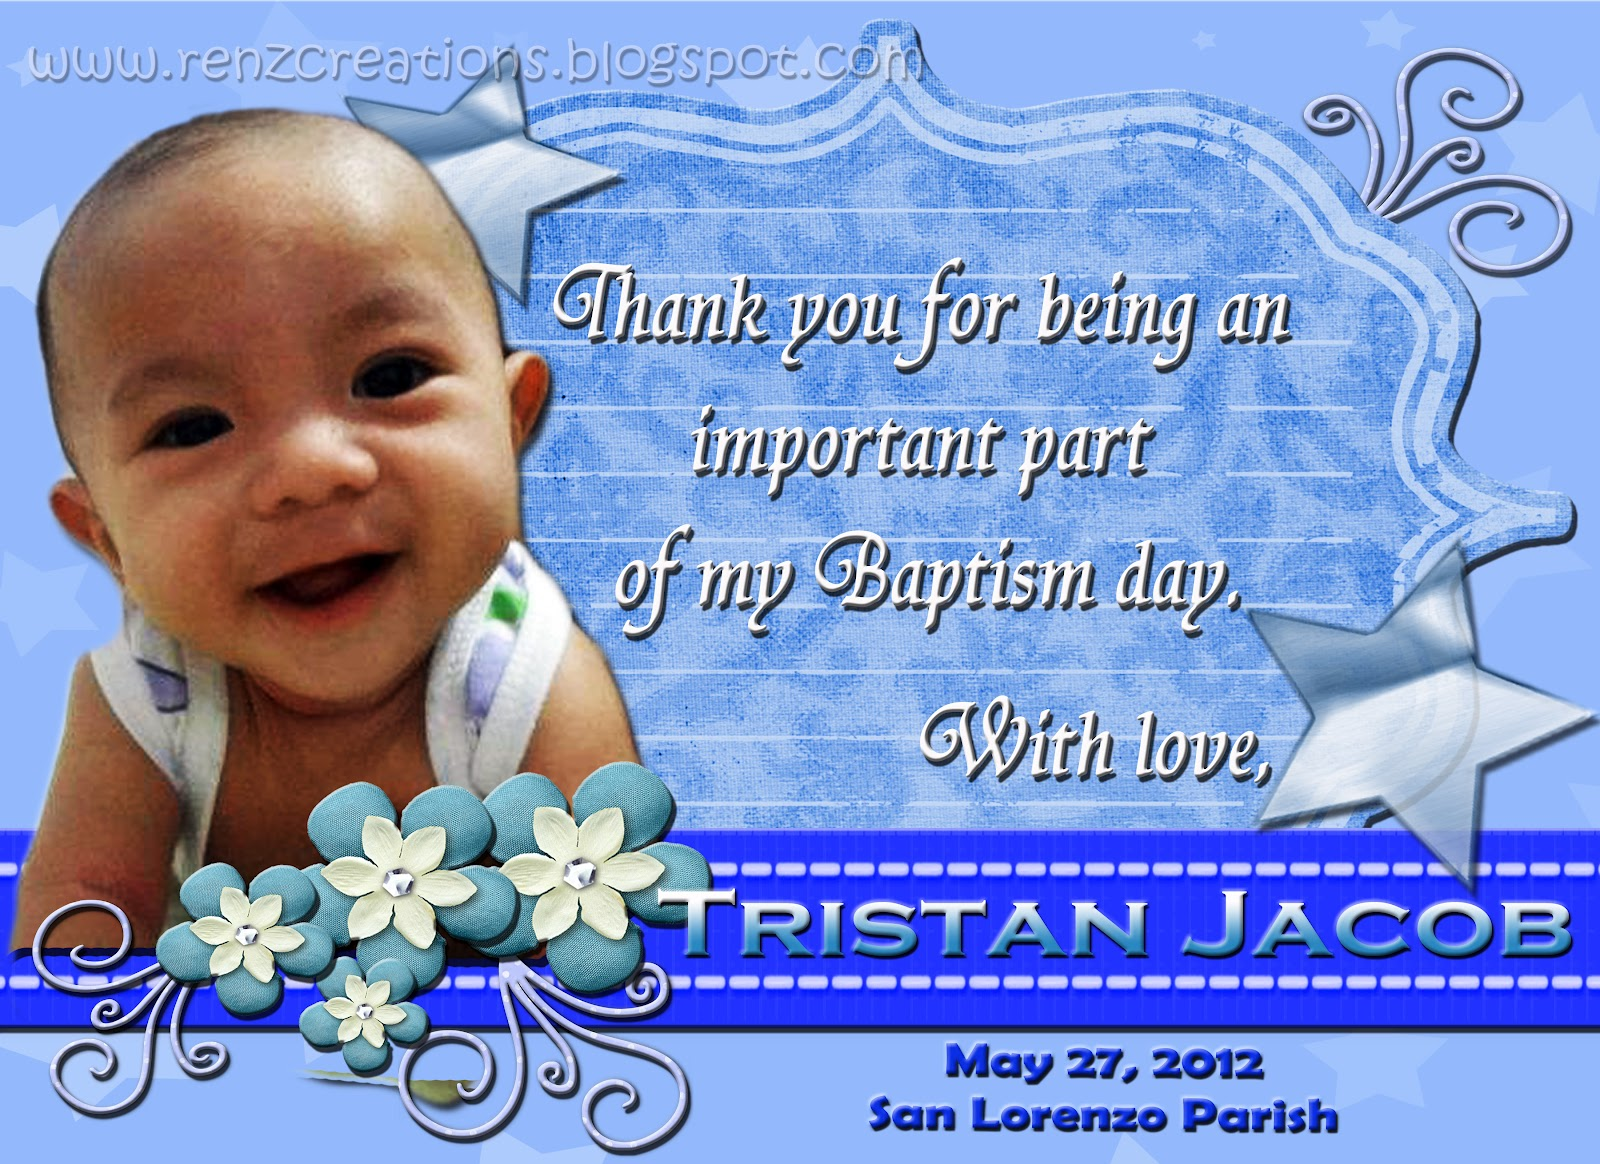 Renz creations invitations and giveaways tristan jacob 39 s christening giveaways - Giveaways baptism ...